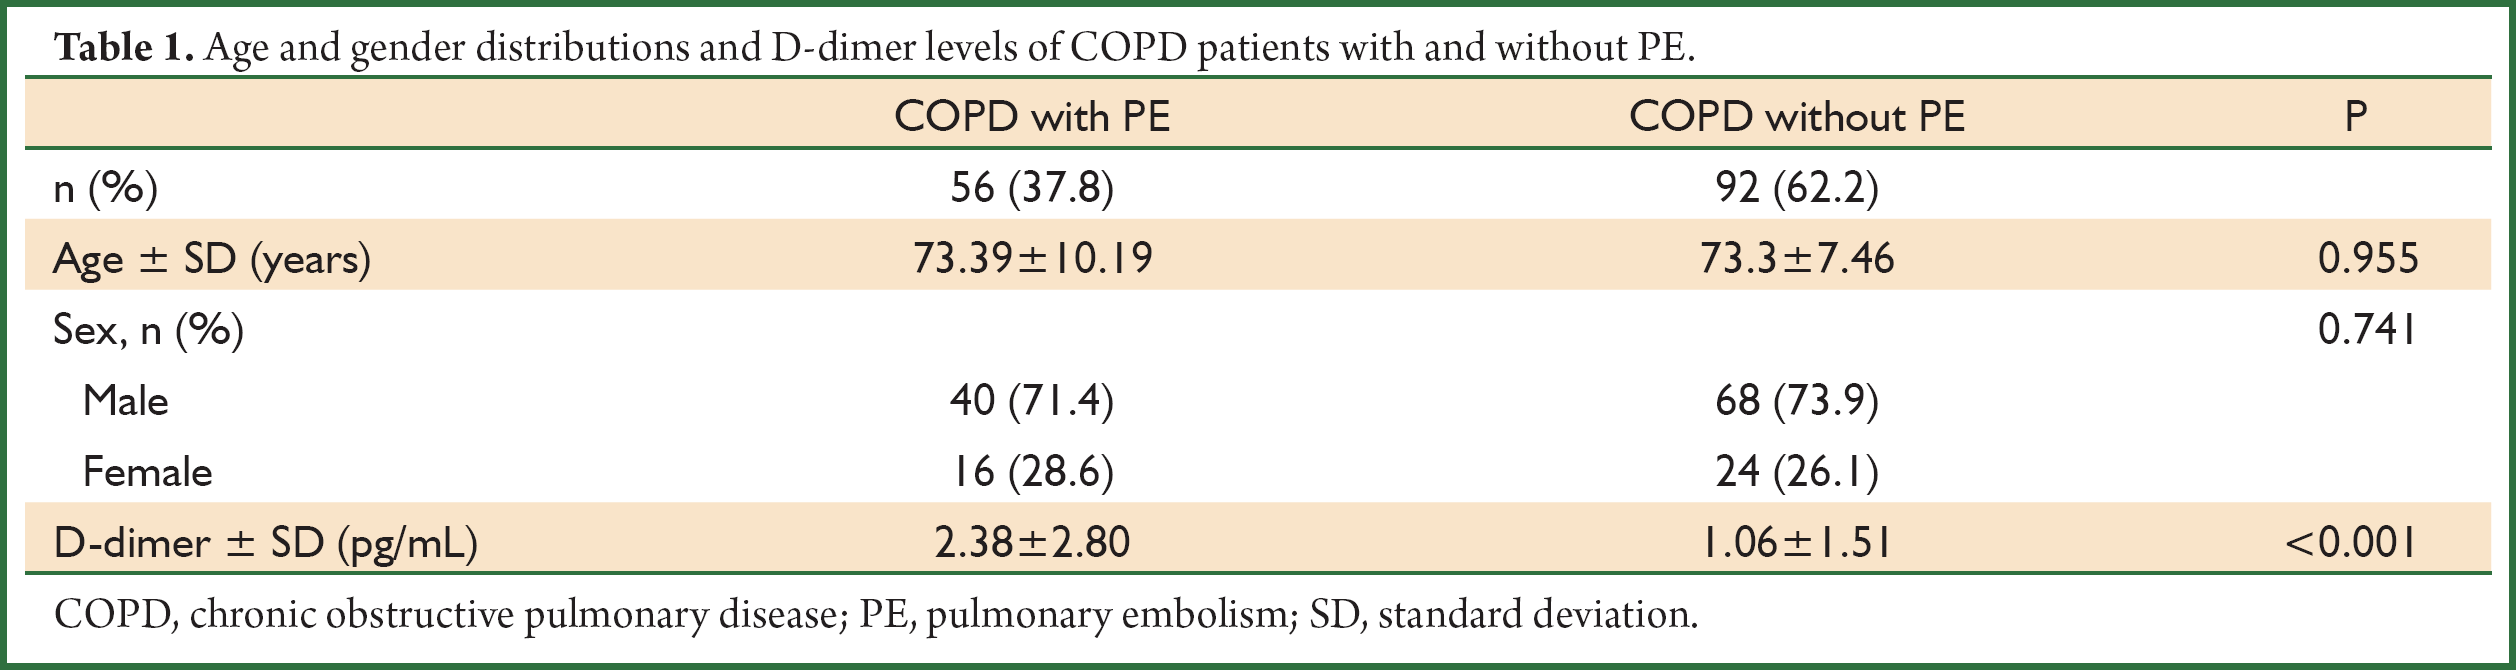 ... distributions and D-dimer levels of COPD patients with and without PE